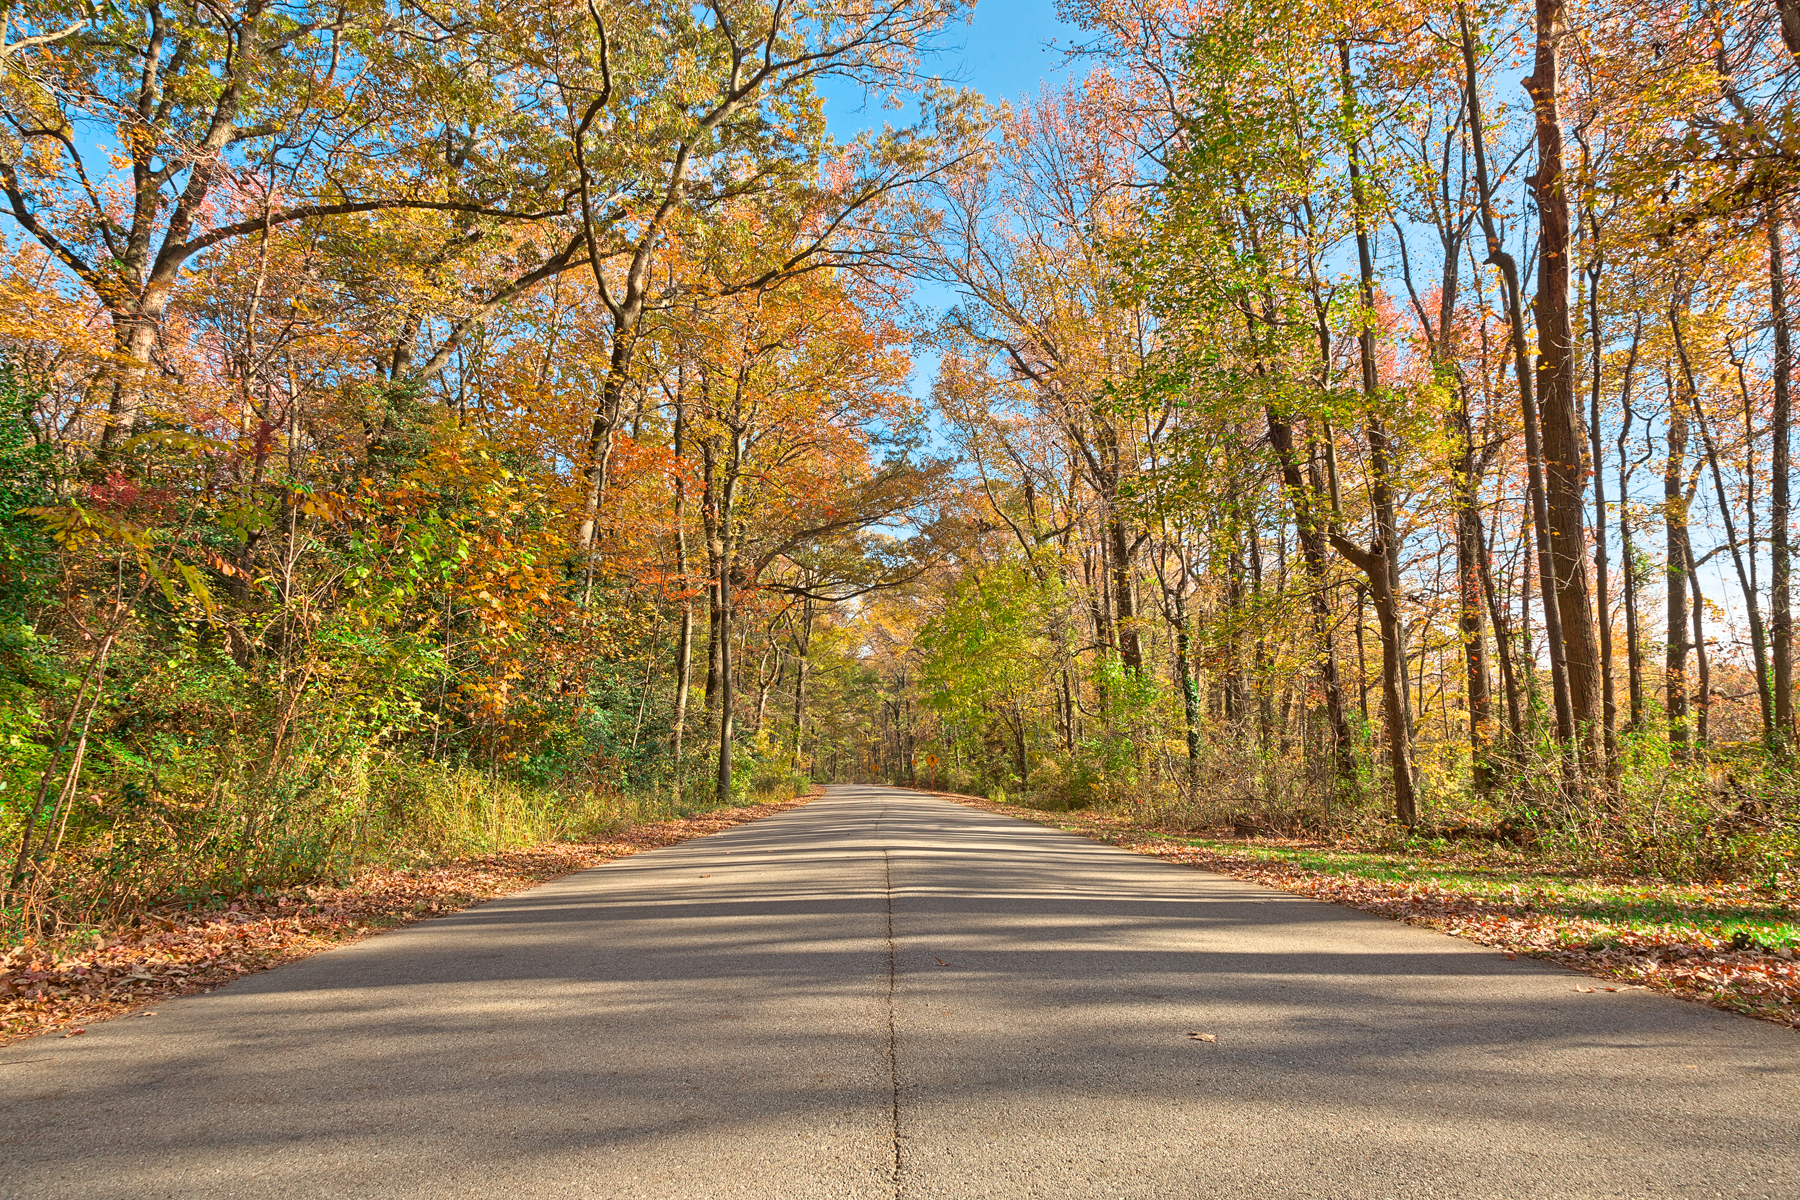 North Point Fall Road - HDR, America, Passageway, Rural, Route, HQ Photo